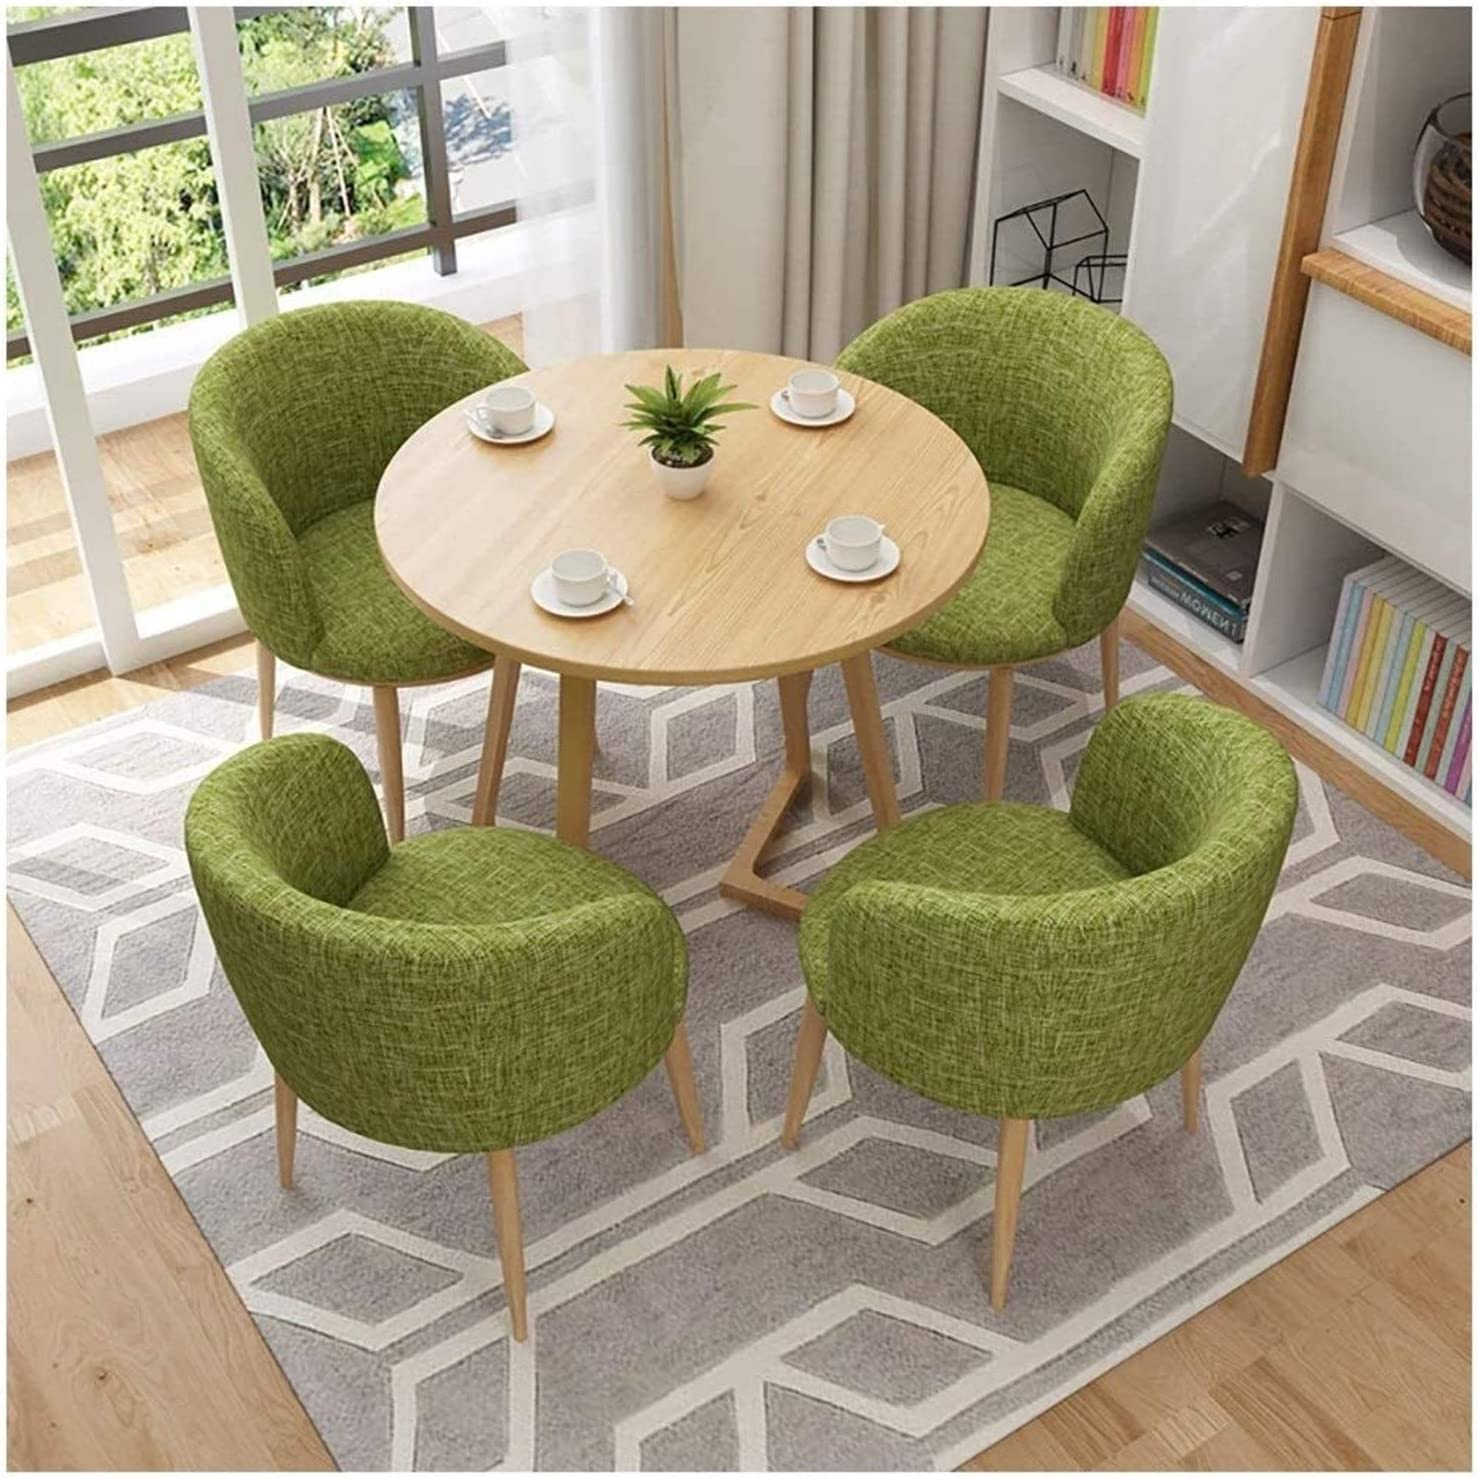 Modern Furniture Dining Room Set Minneapolis Mall Fees free S Round and Table Chair